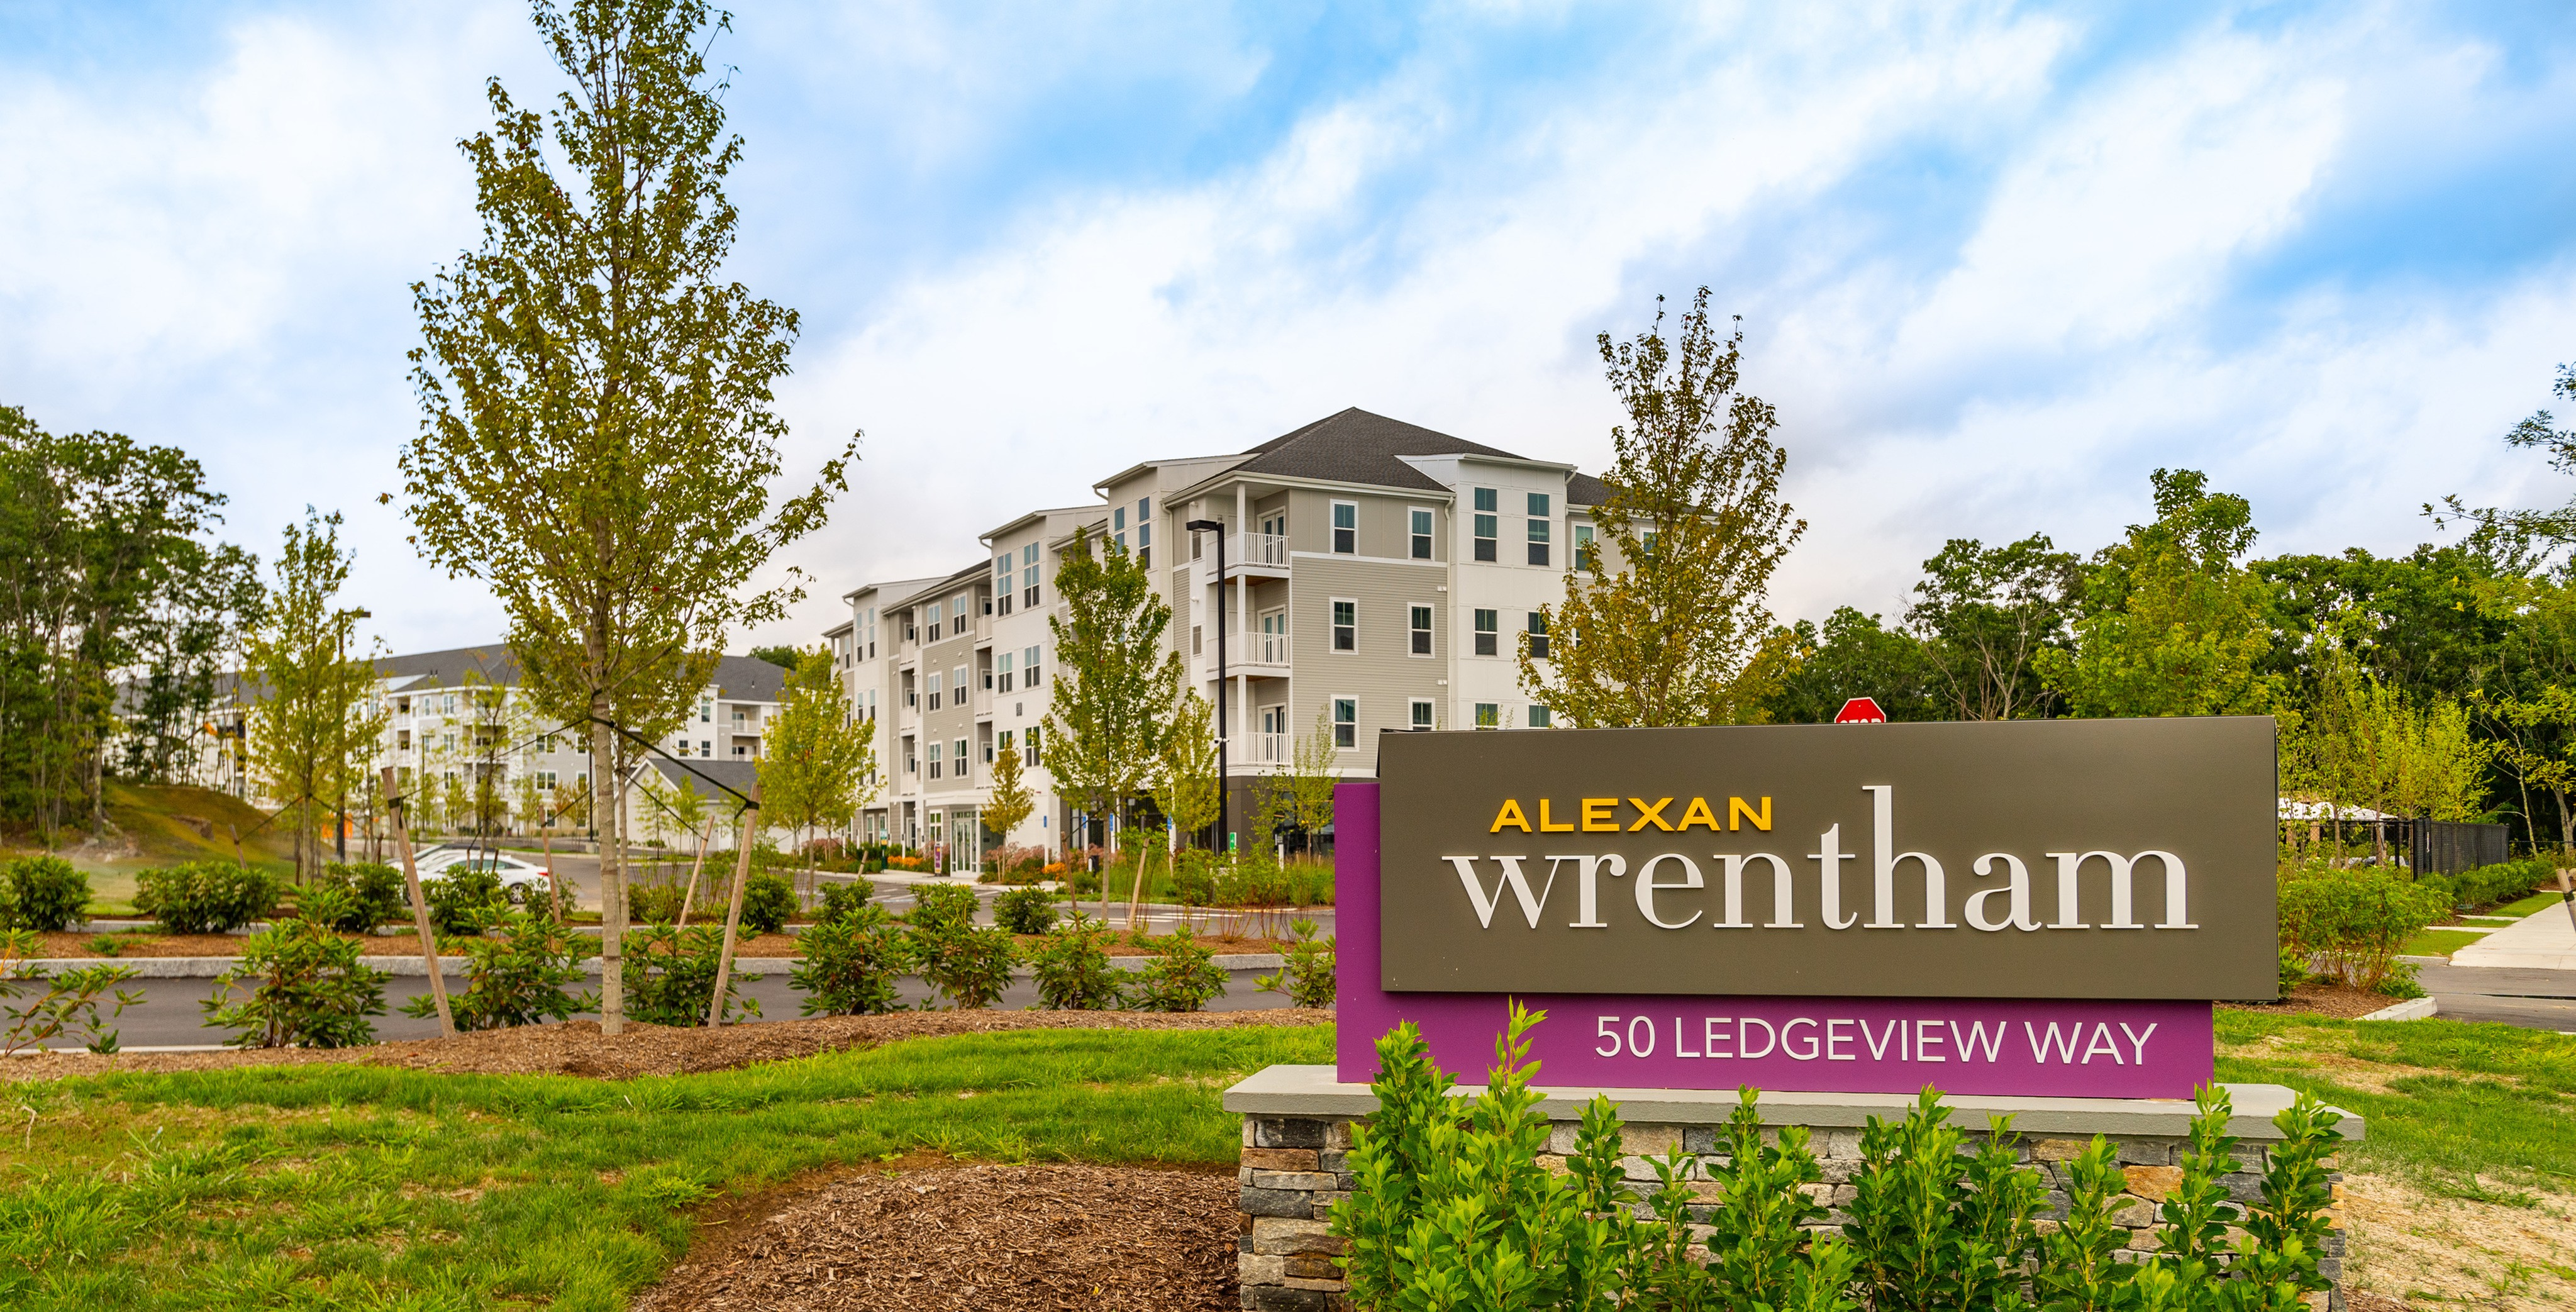 Apartments Near Dean Alexan Wrentham for Dean College Students in Franklin, MA